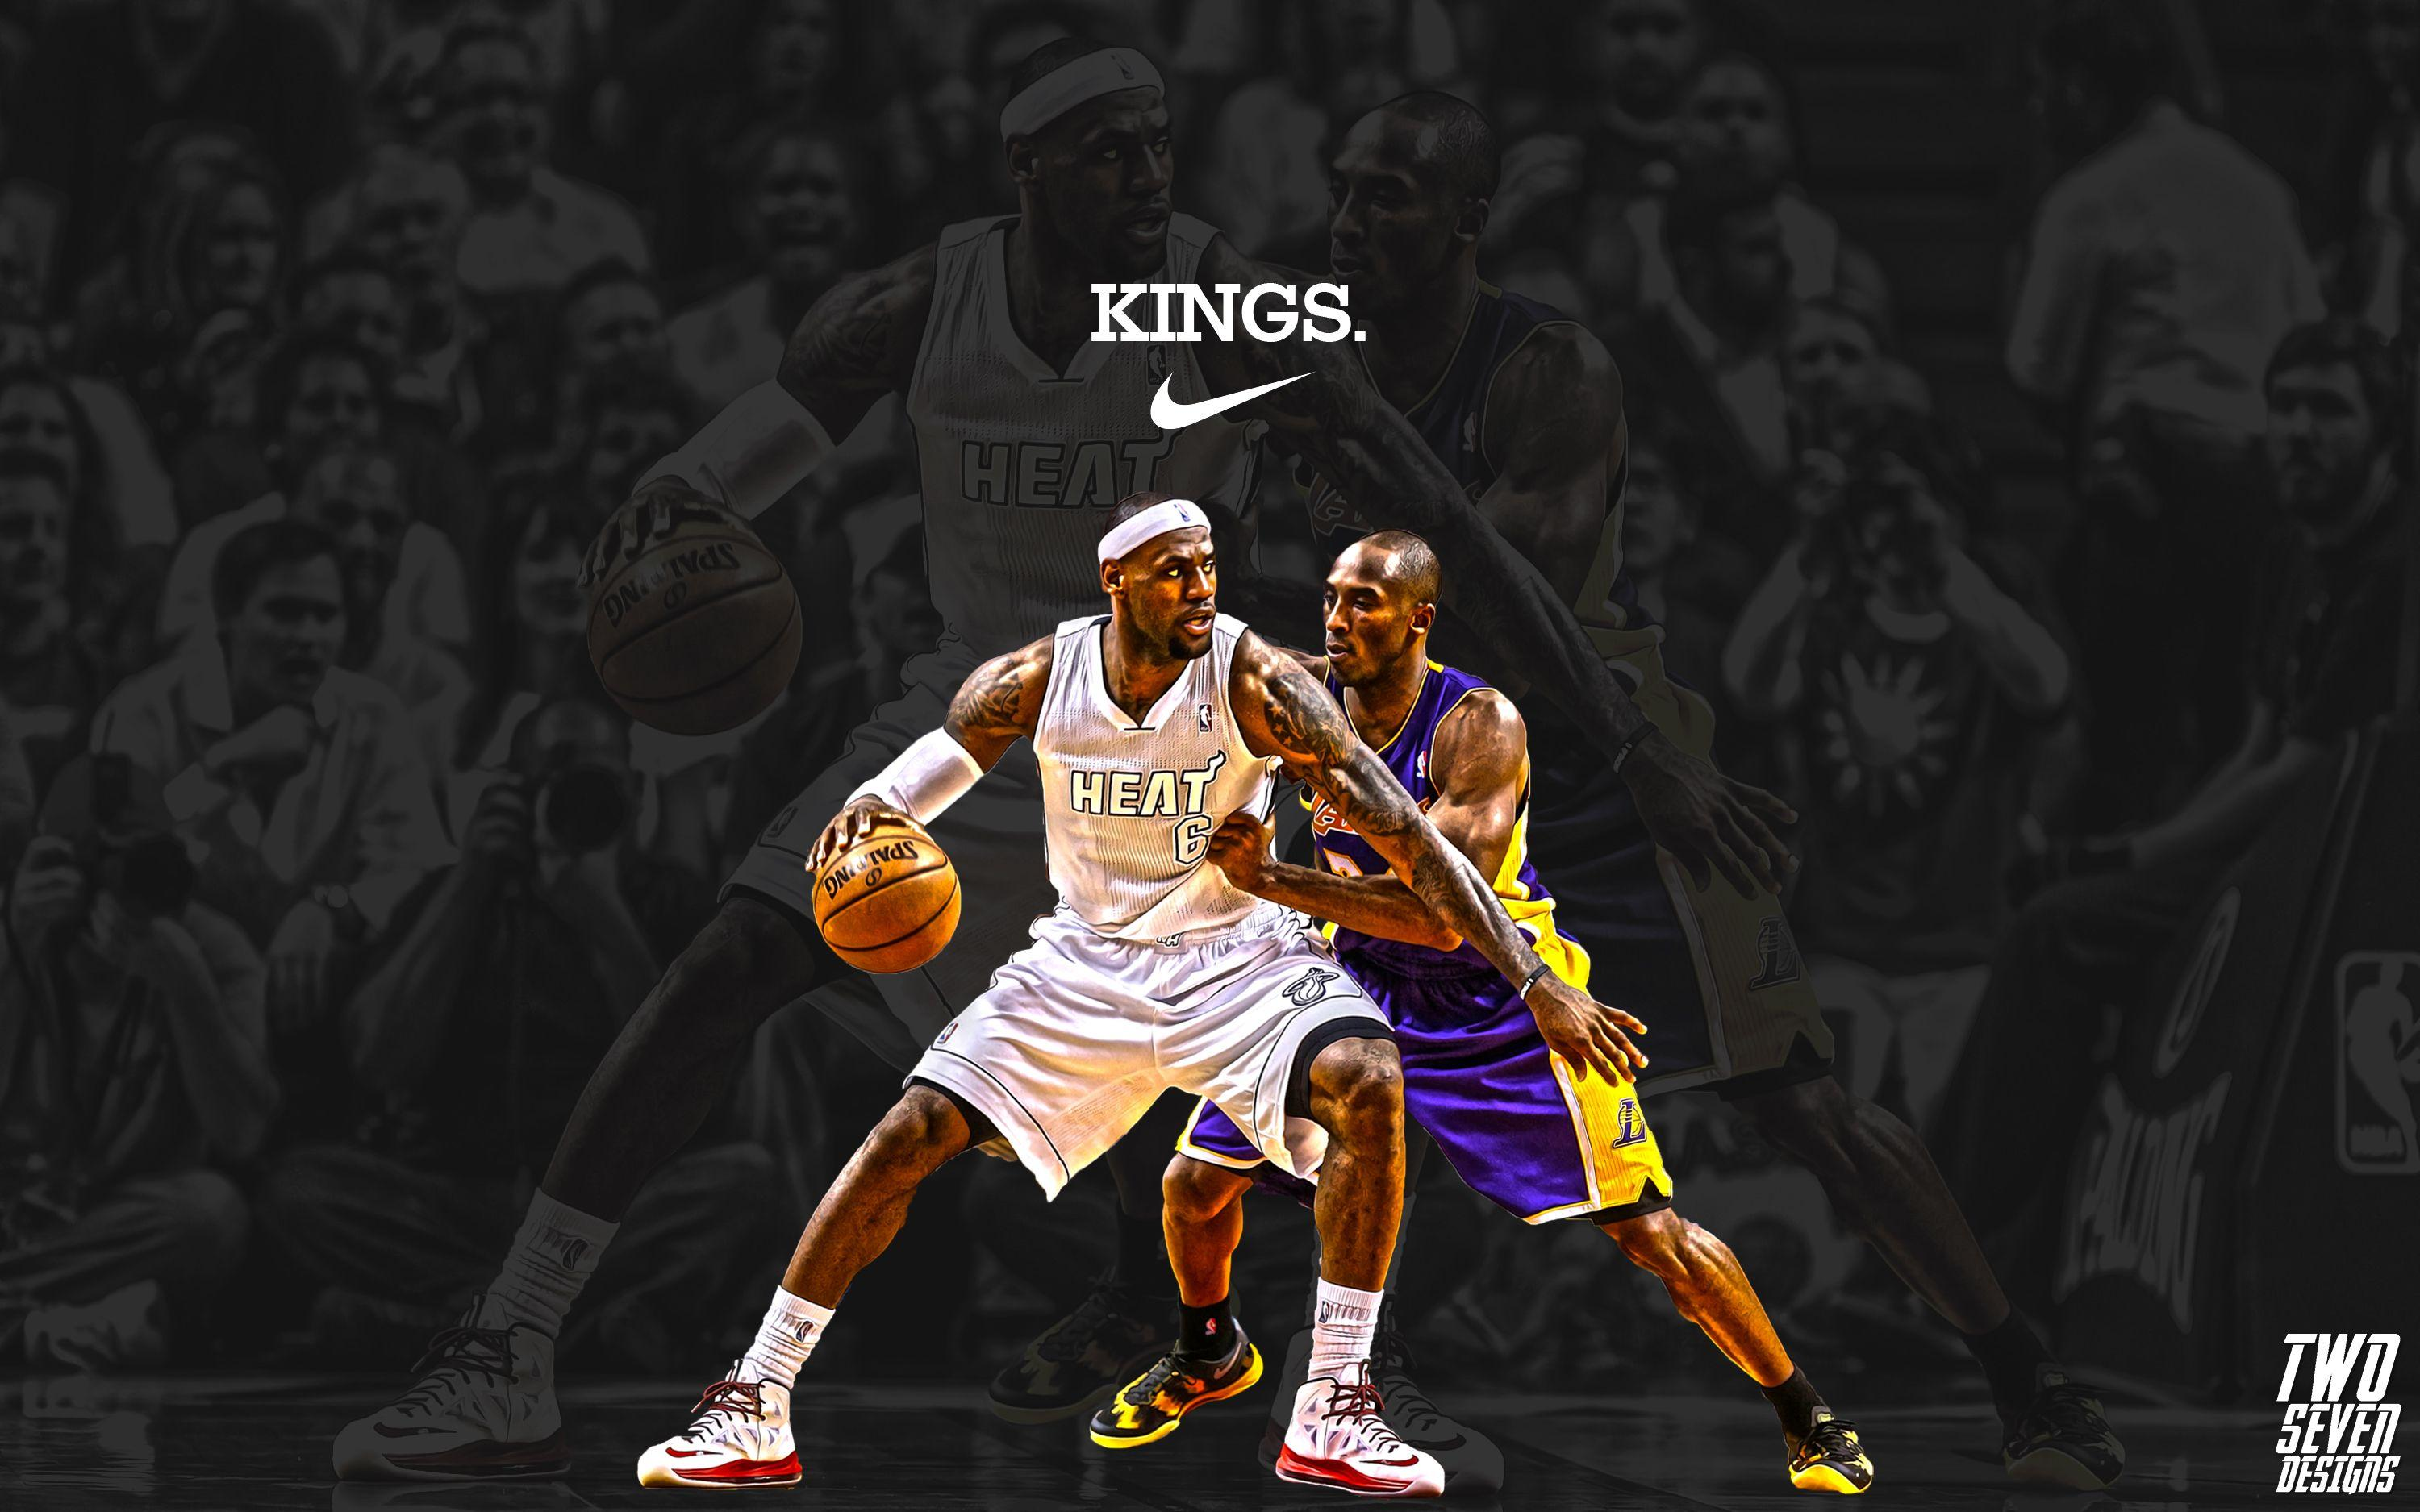 Lebron And Kobe Wallpapers Top Free Lebron And Kobe Backgrounds Wallpaperaccess